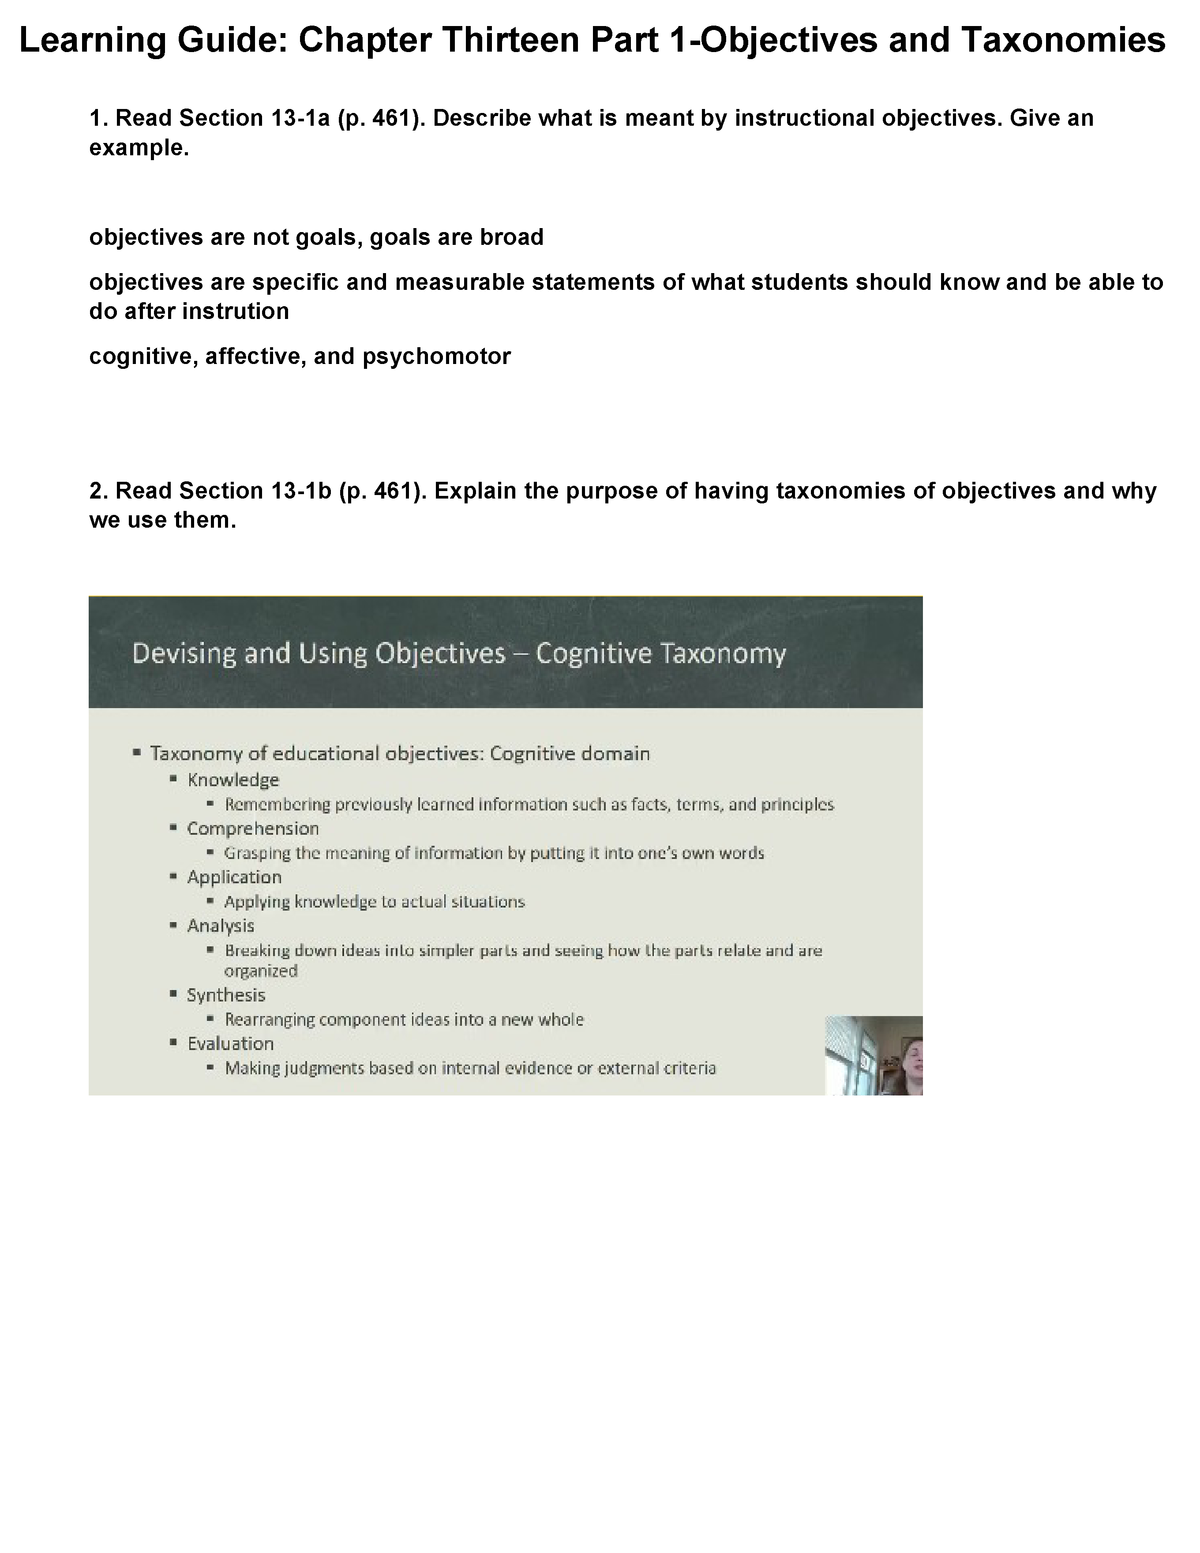 Copy of Chapter 13 Learning Guide Part I - C973 - StuDocu